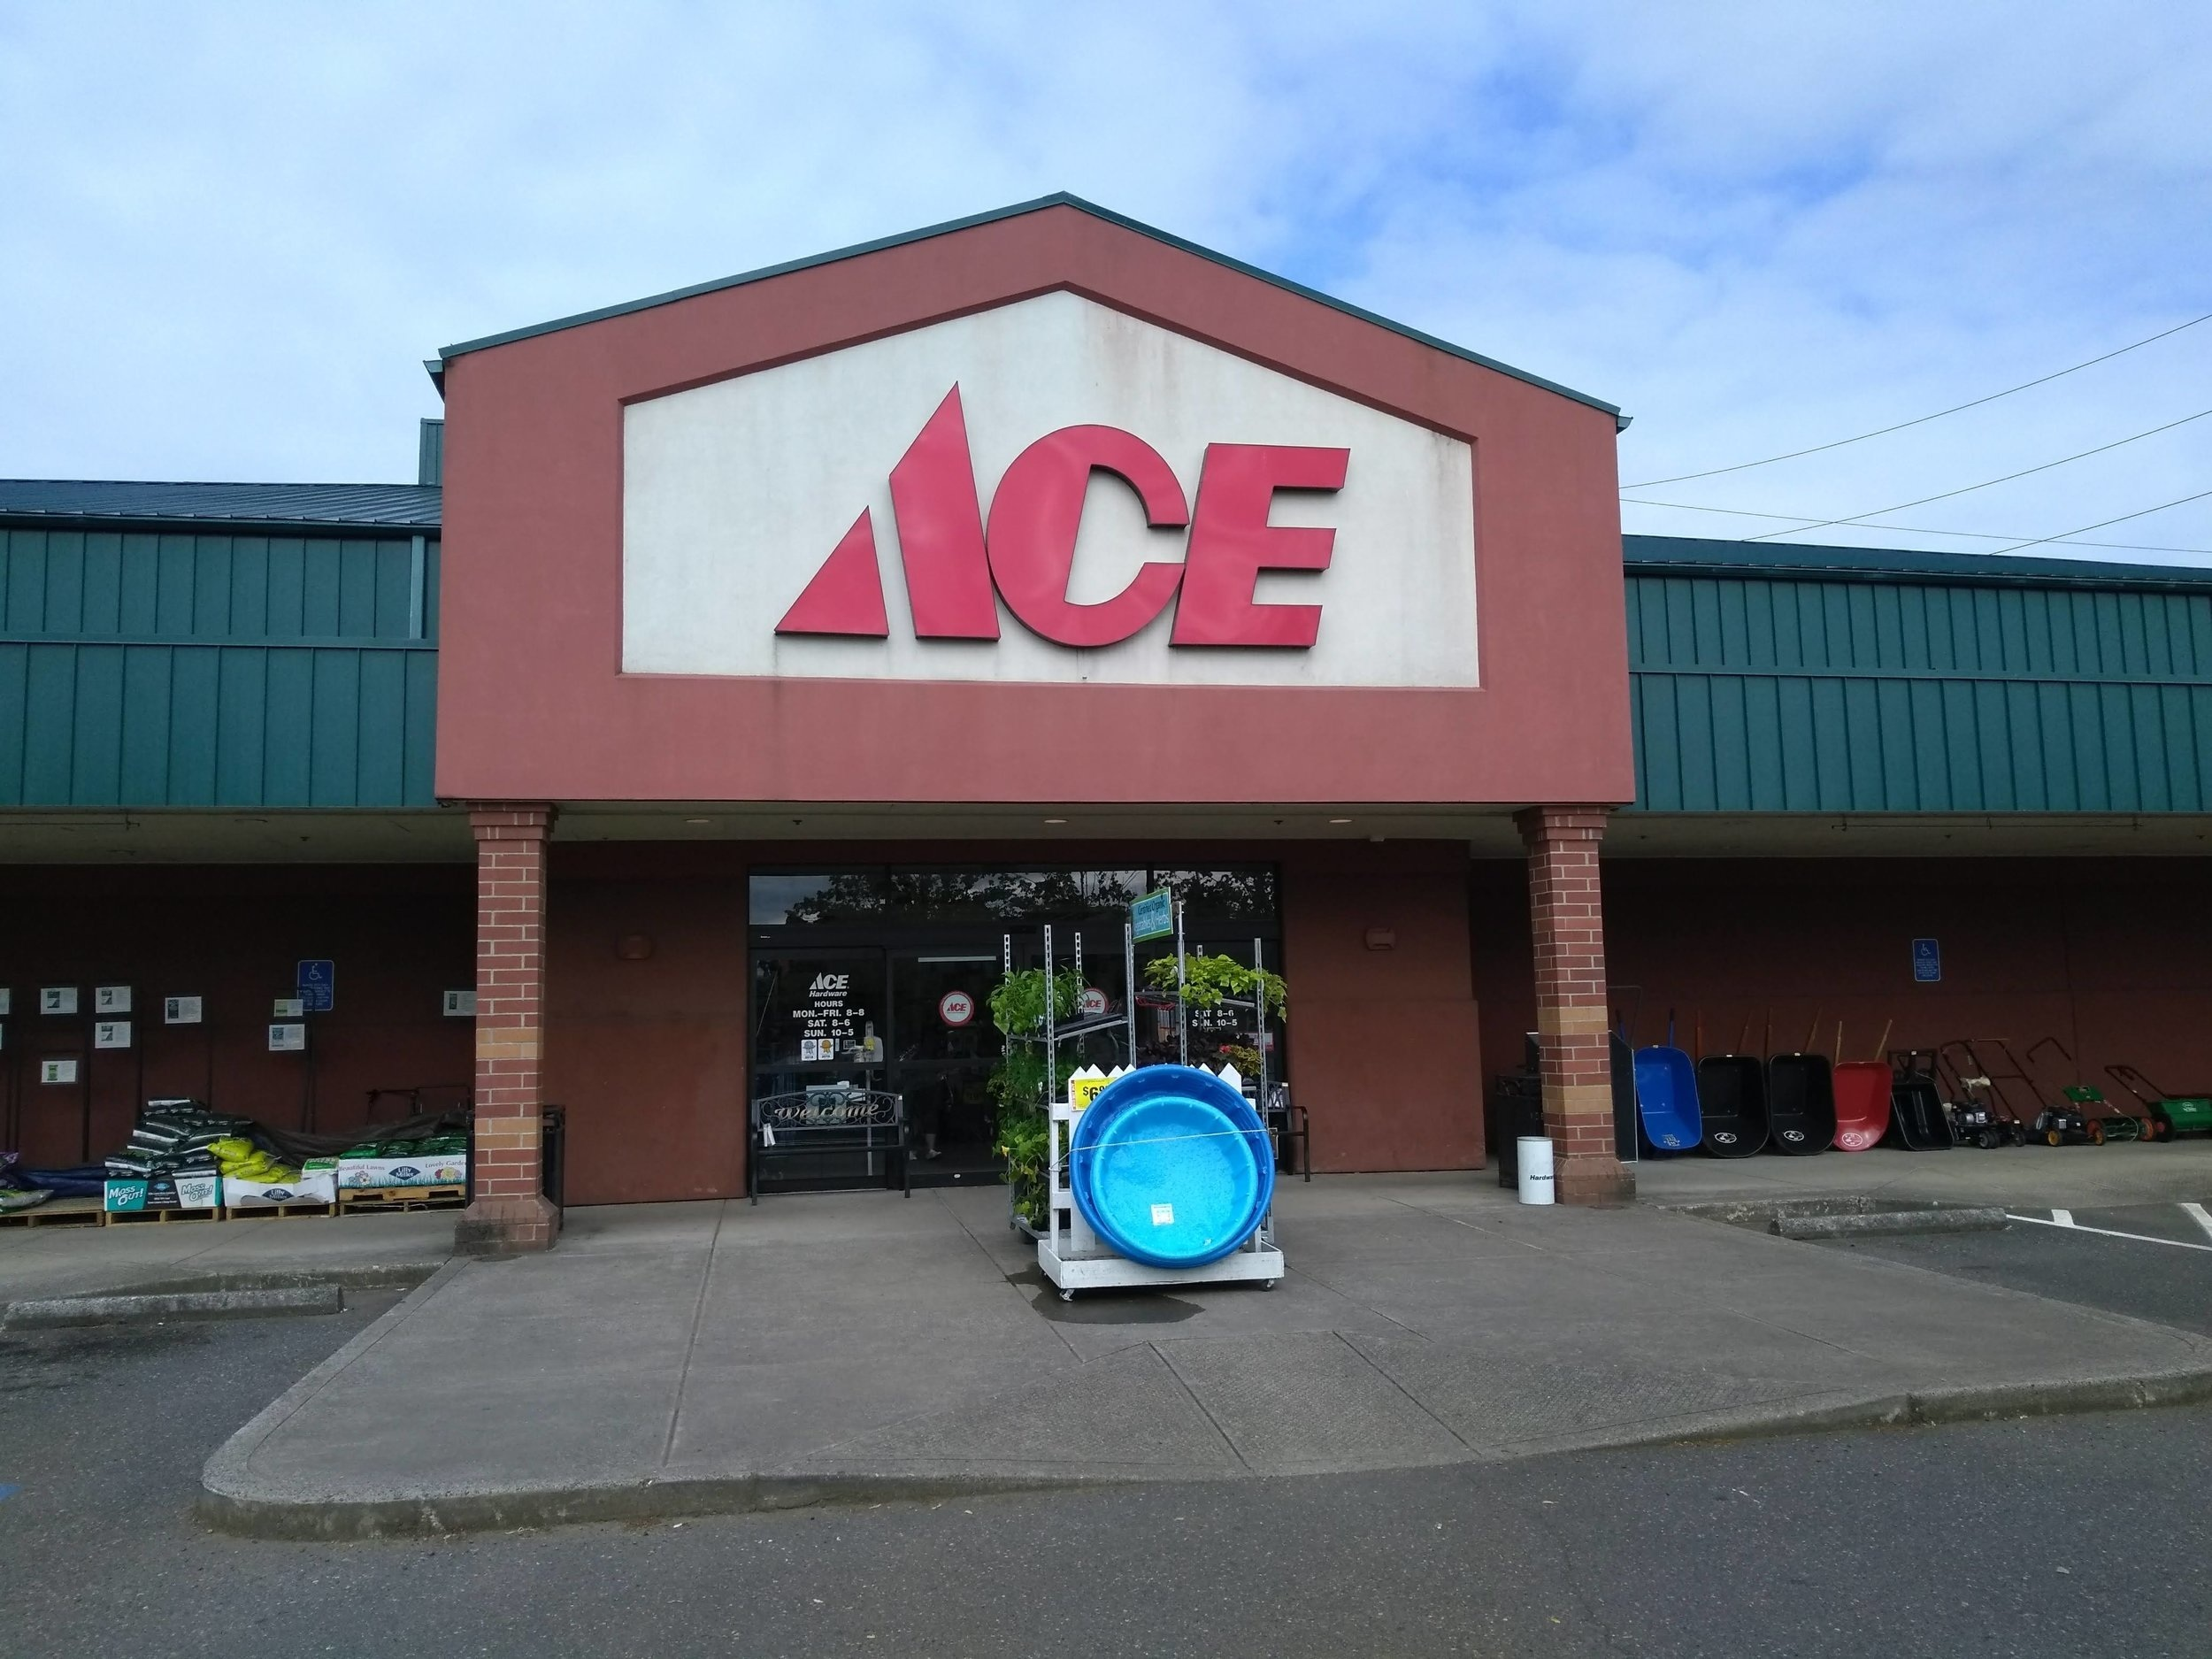 Ace Hardware donated 95% of plumbing supplies